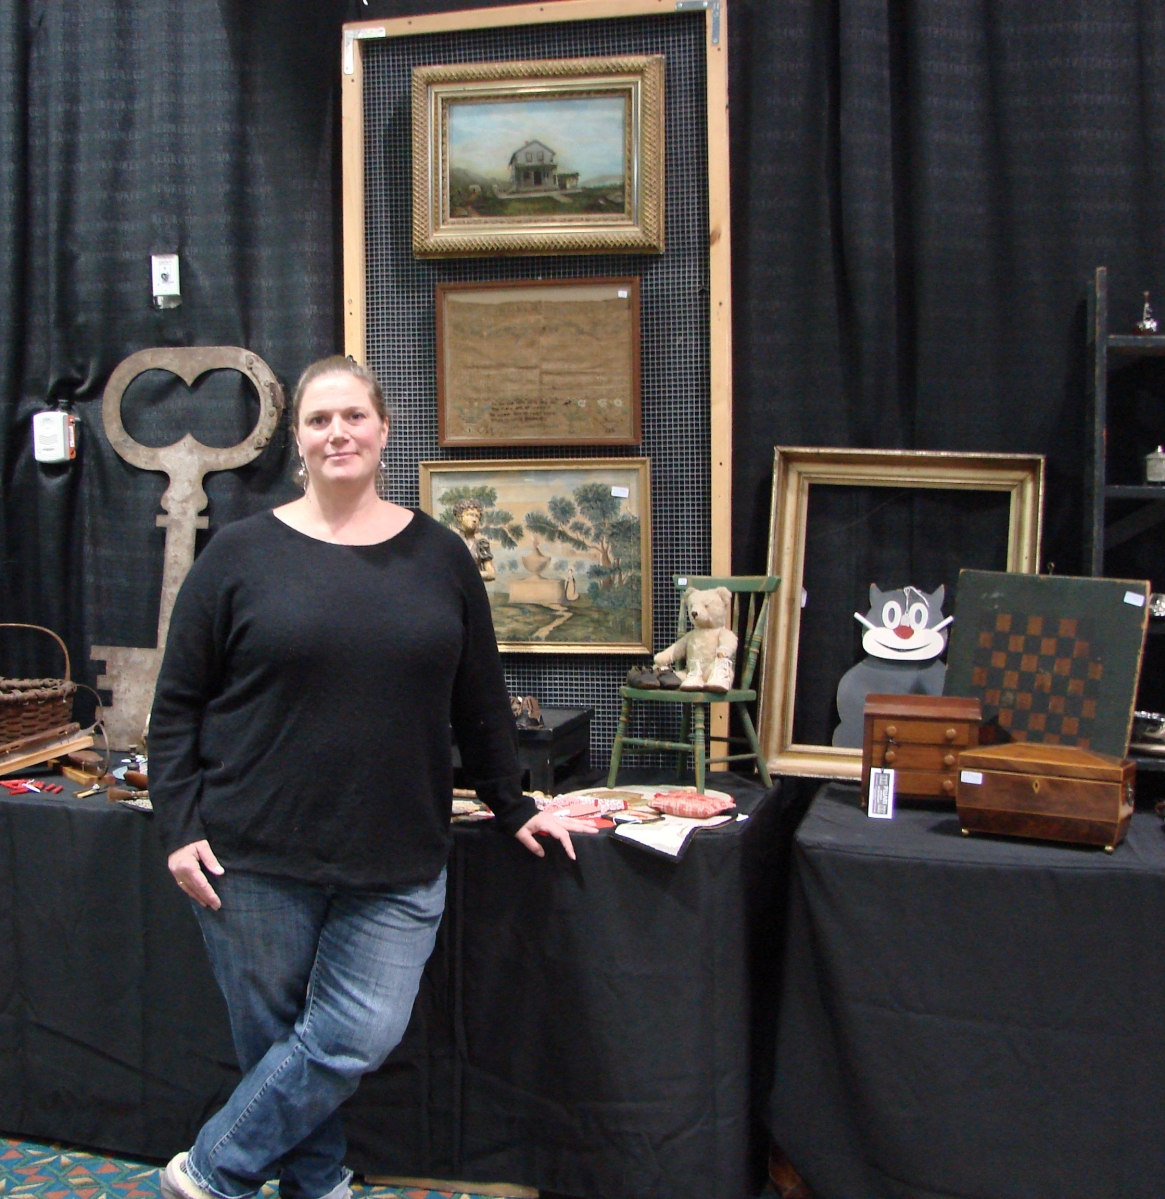 Rachel Gurley, along with her brother Josh, planned and managed this show, which is the first of three this year. They worked for several years with their mother, the late Nan Gurley, and run other shows throughout the year, including a well-established favorite at the Deerfield fairgrounds during Antiques Week in New Hampshire.